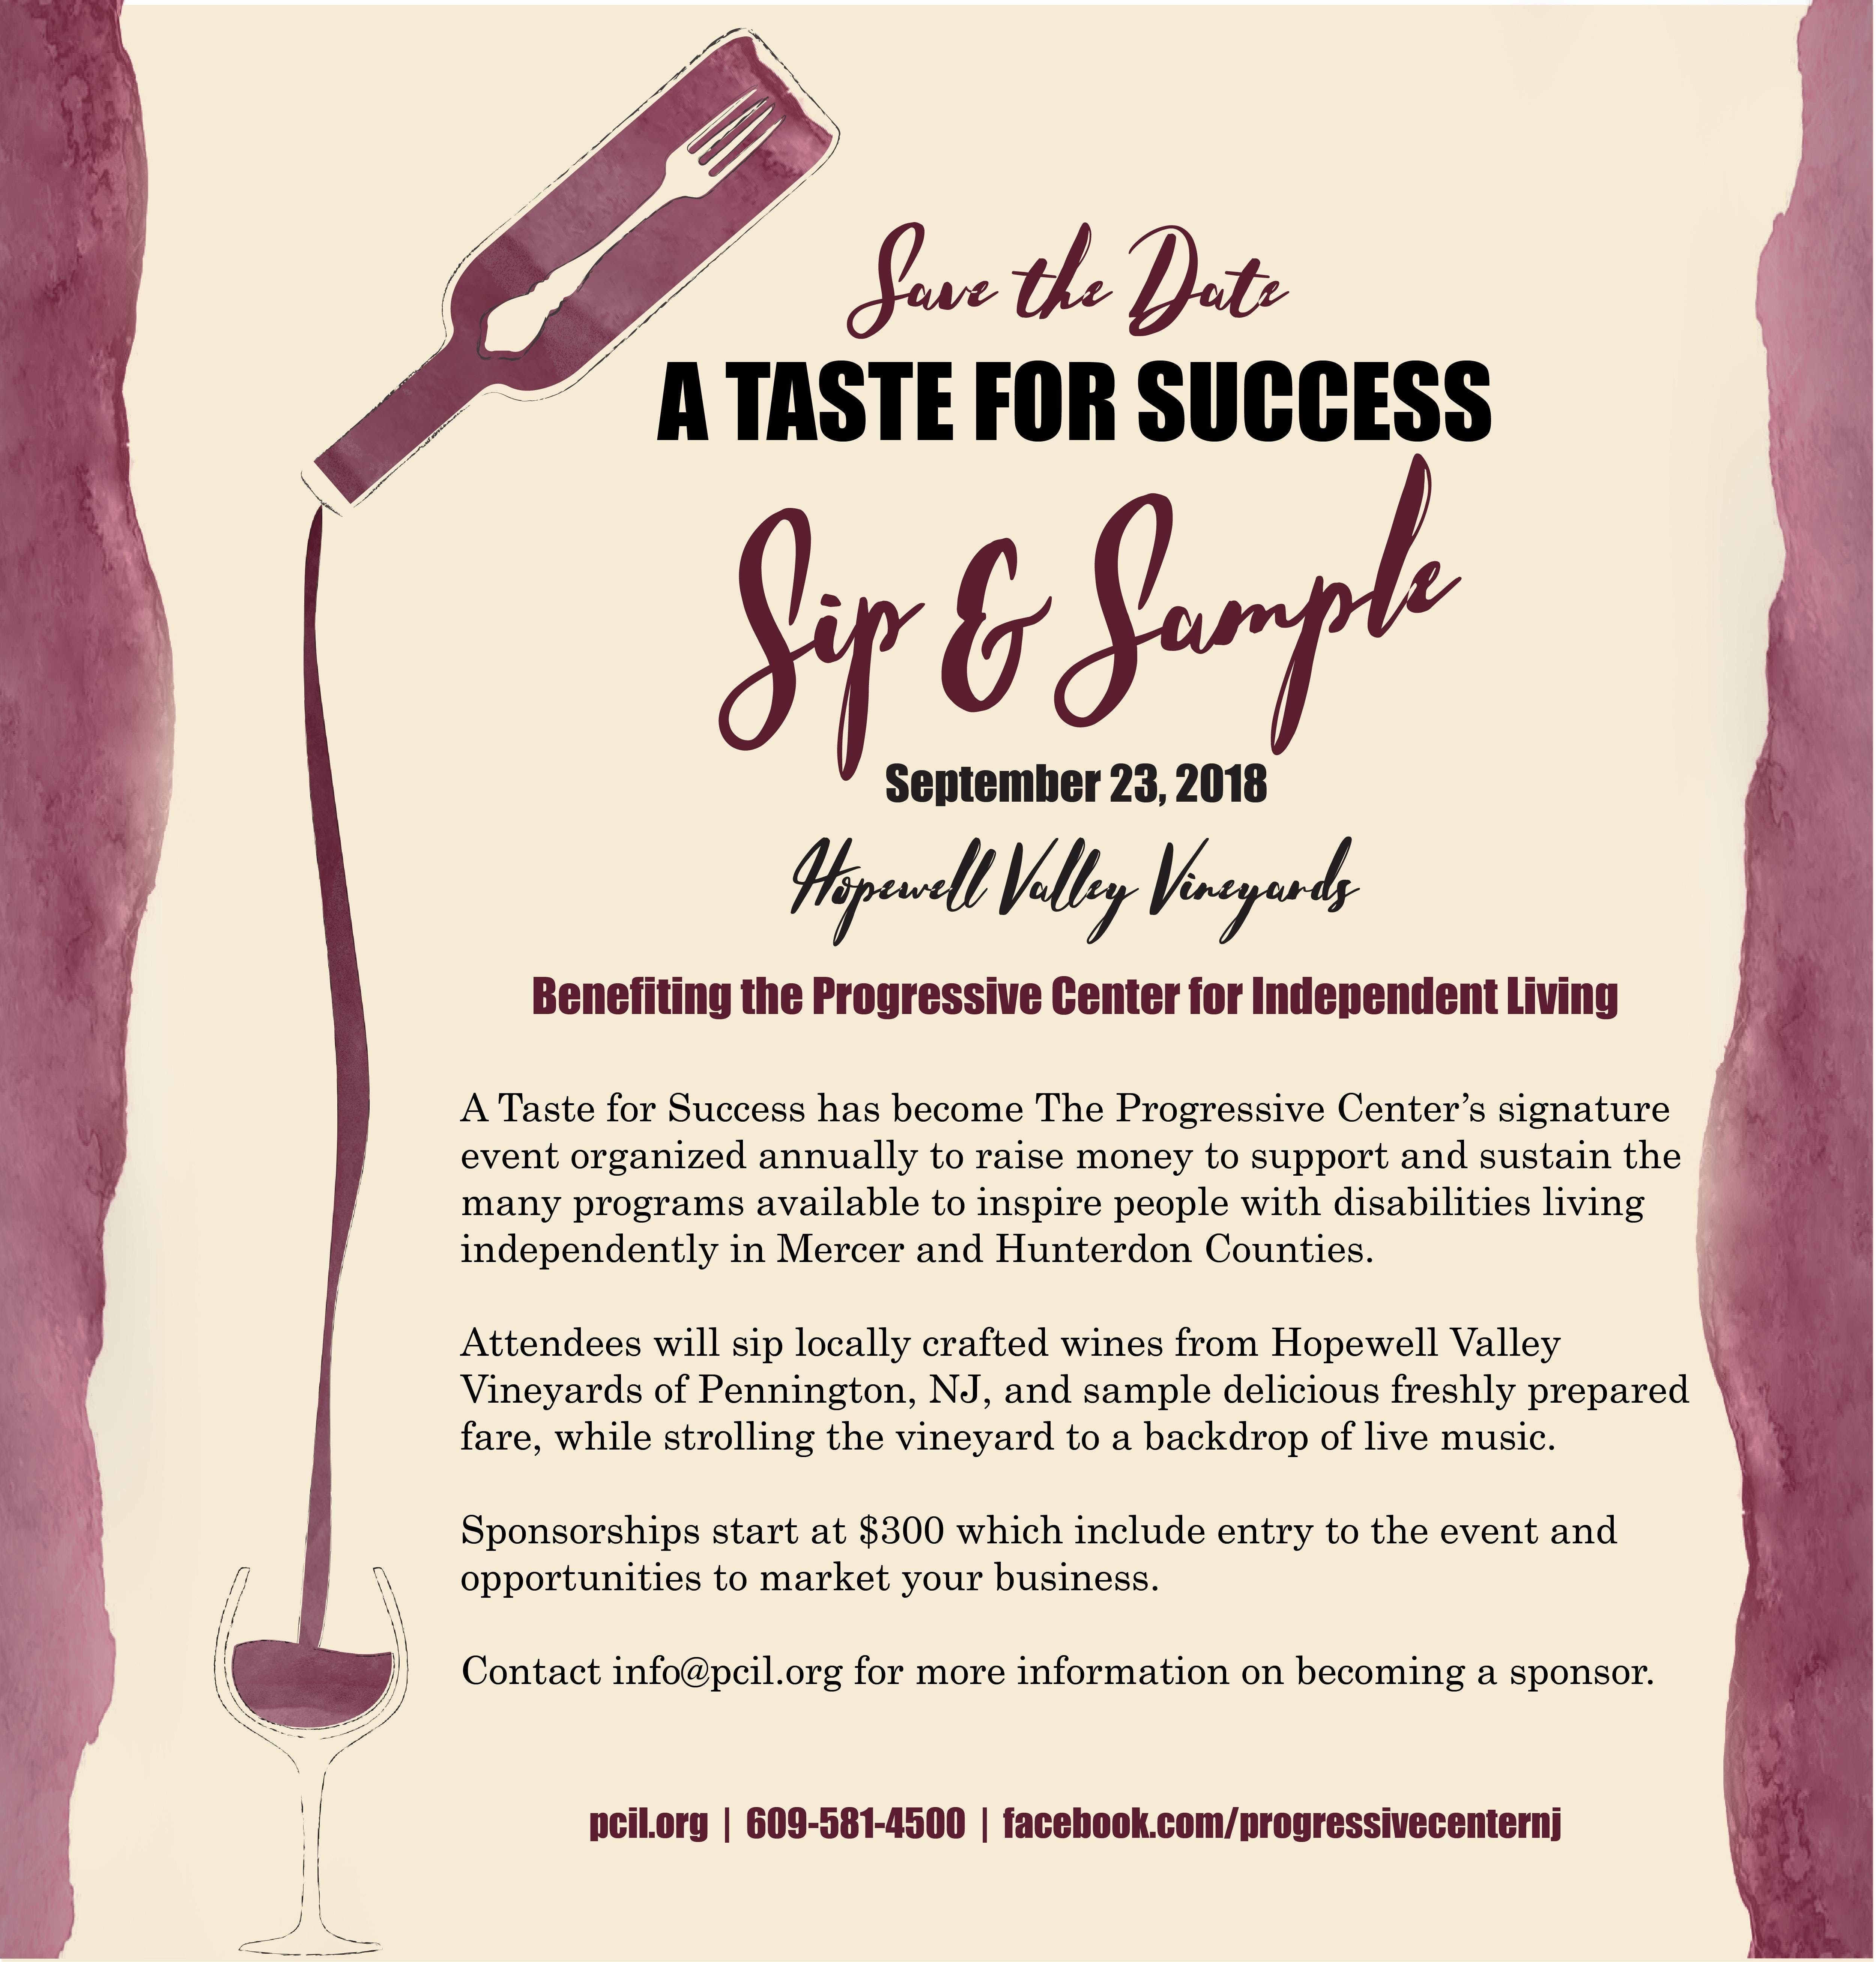 A Taste for Success - Sip and Sample